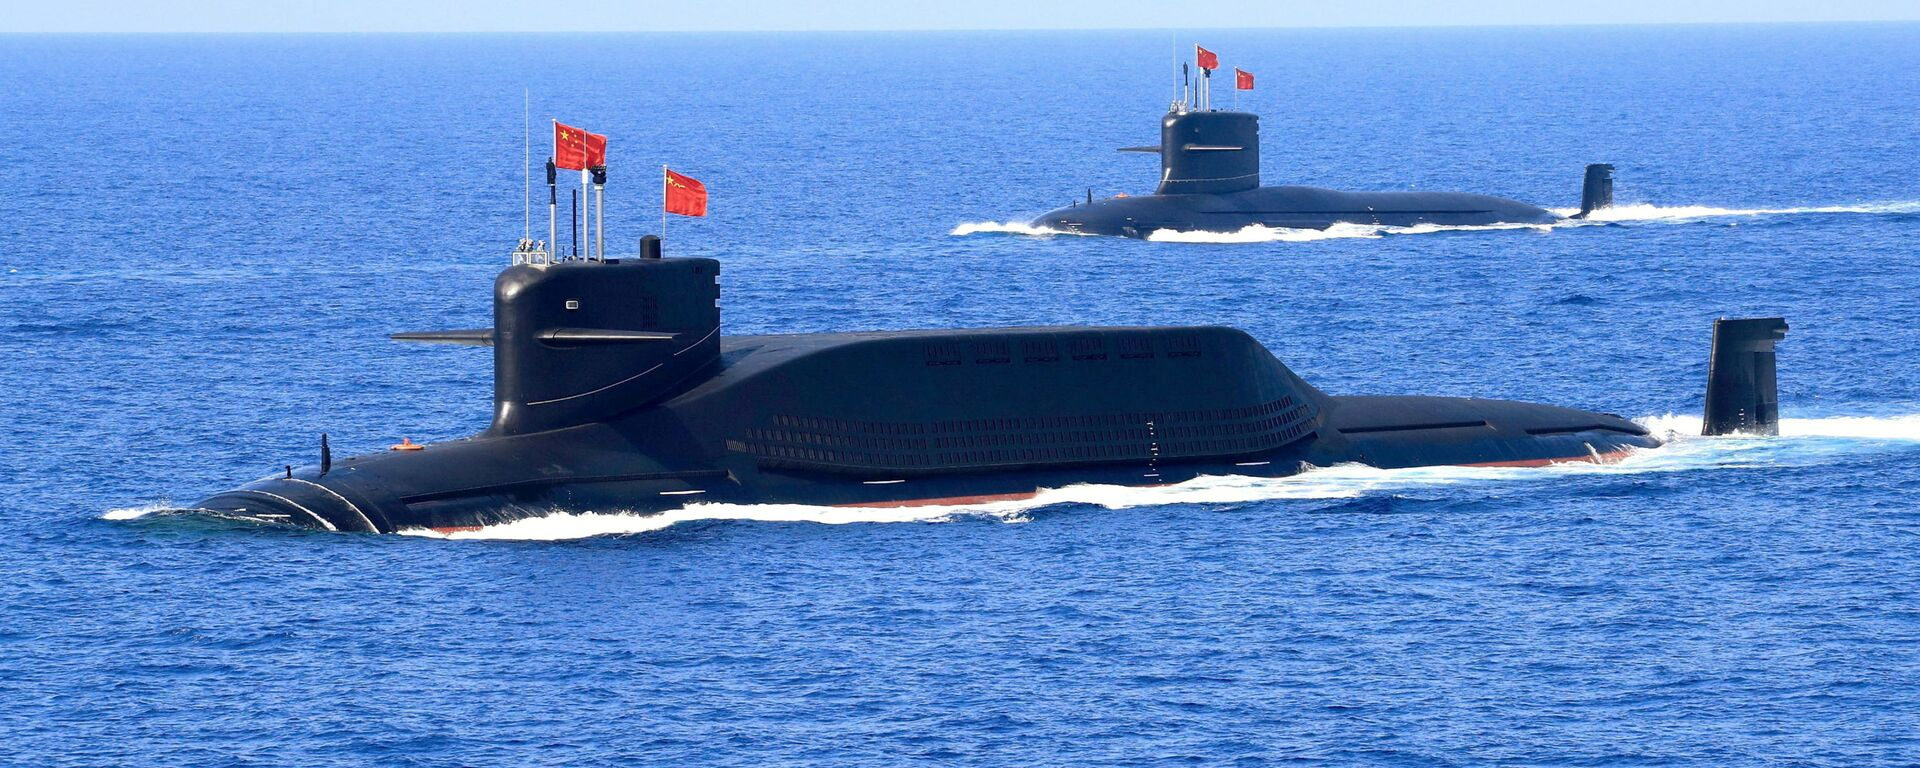 A nuclear-powered Type 094A Jin-class ballistic missile submarine of the Chinese People's Liberation Army (PLA) Navy is seen during a military display in the South China Sea April 12, 2018 - Sputnik International, 1920, 18.09.2021